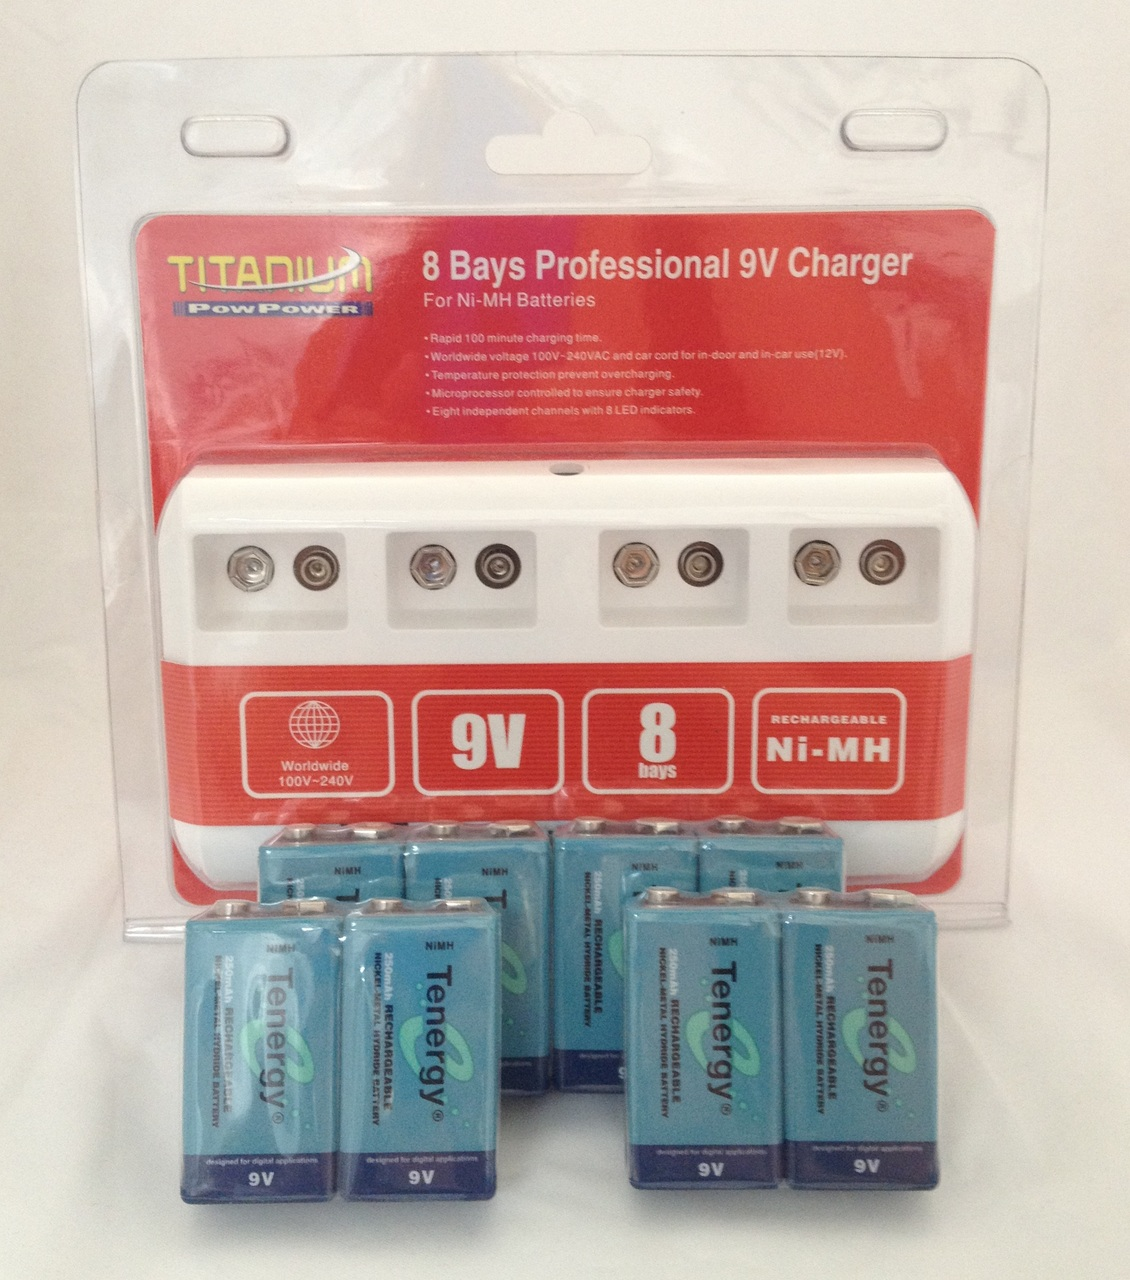 Titanium 8 Bay Professional 9V Charger For NiMH Batteries With 8 Tenergy 9V 250mah NiMB Batteries + FREE SHIPPING!